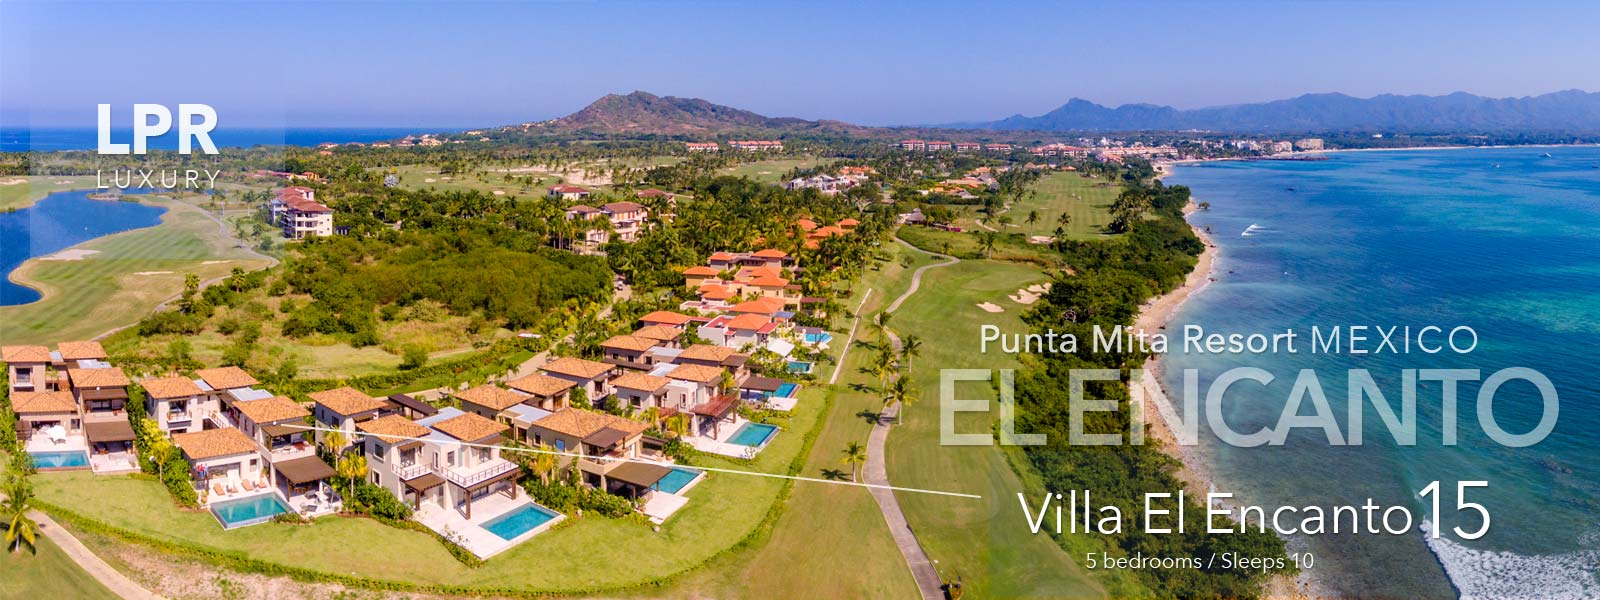 Villa El Encanto 15 - Luxury Punta Mita Resort Vacation Rental Villa